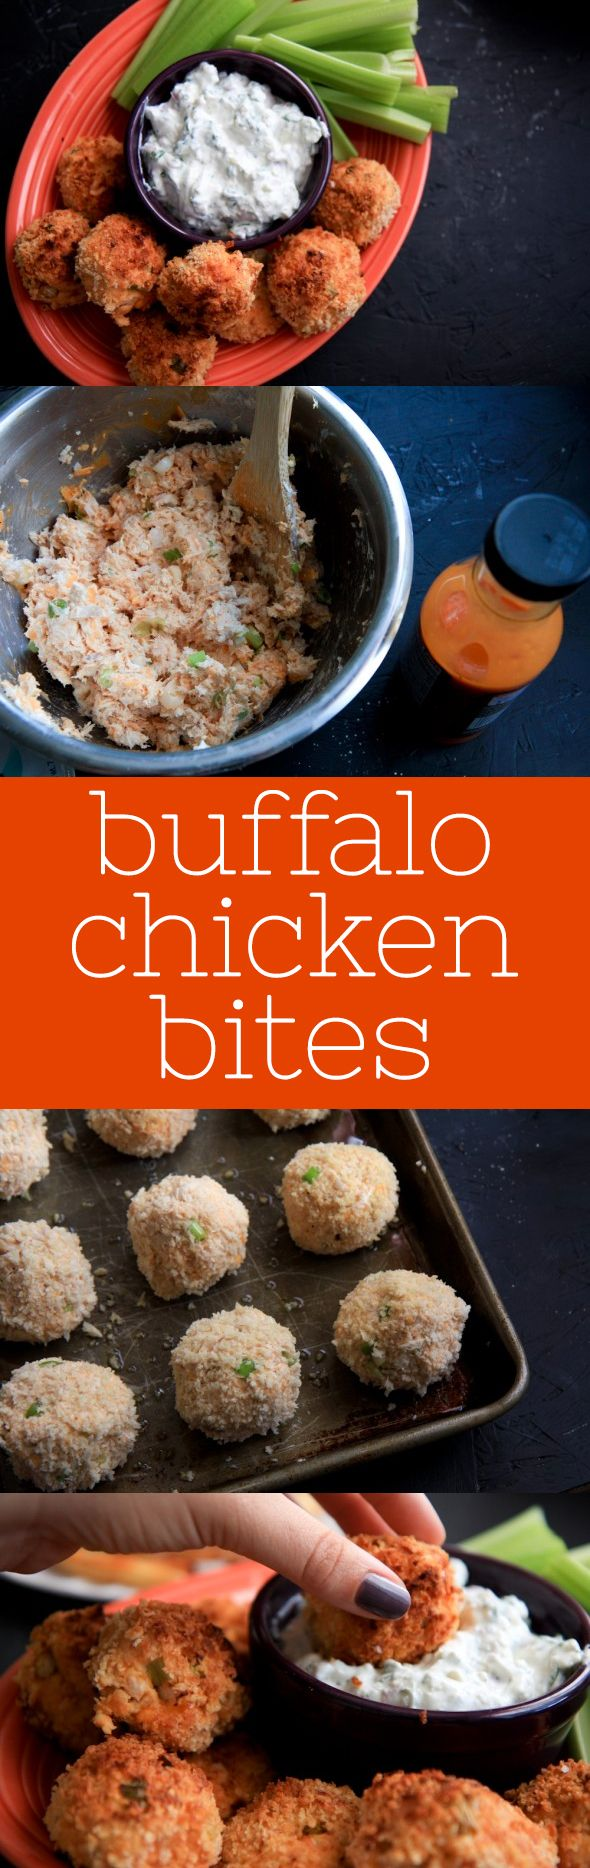 Have plenty of finger food - your guests won't be able to keep their fingers off these buffalo chicken bites! #BHGREParty